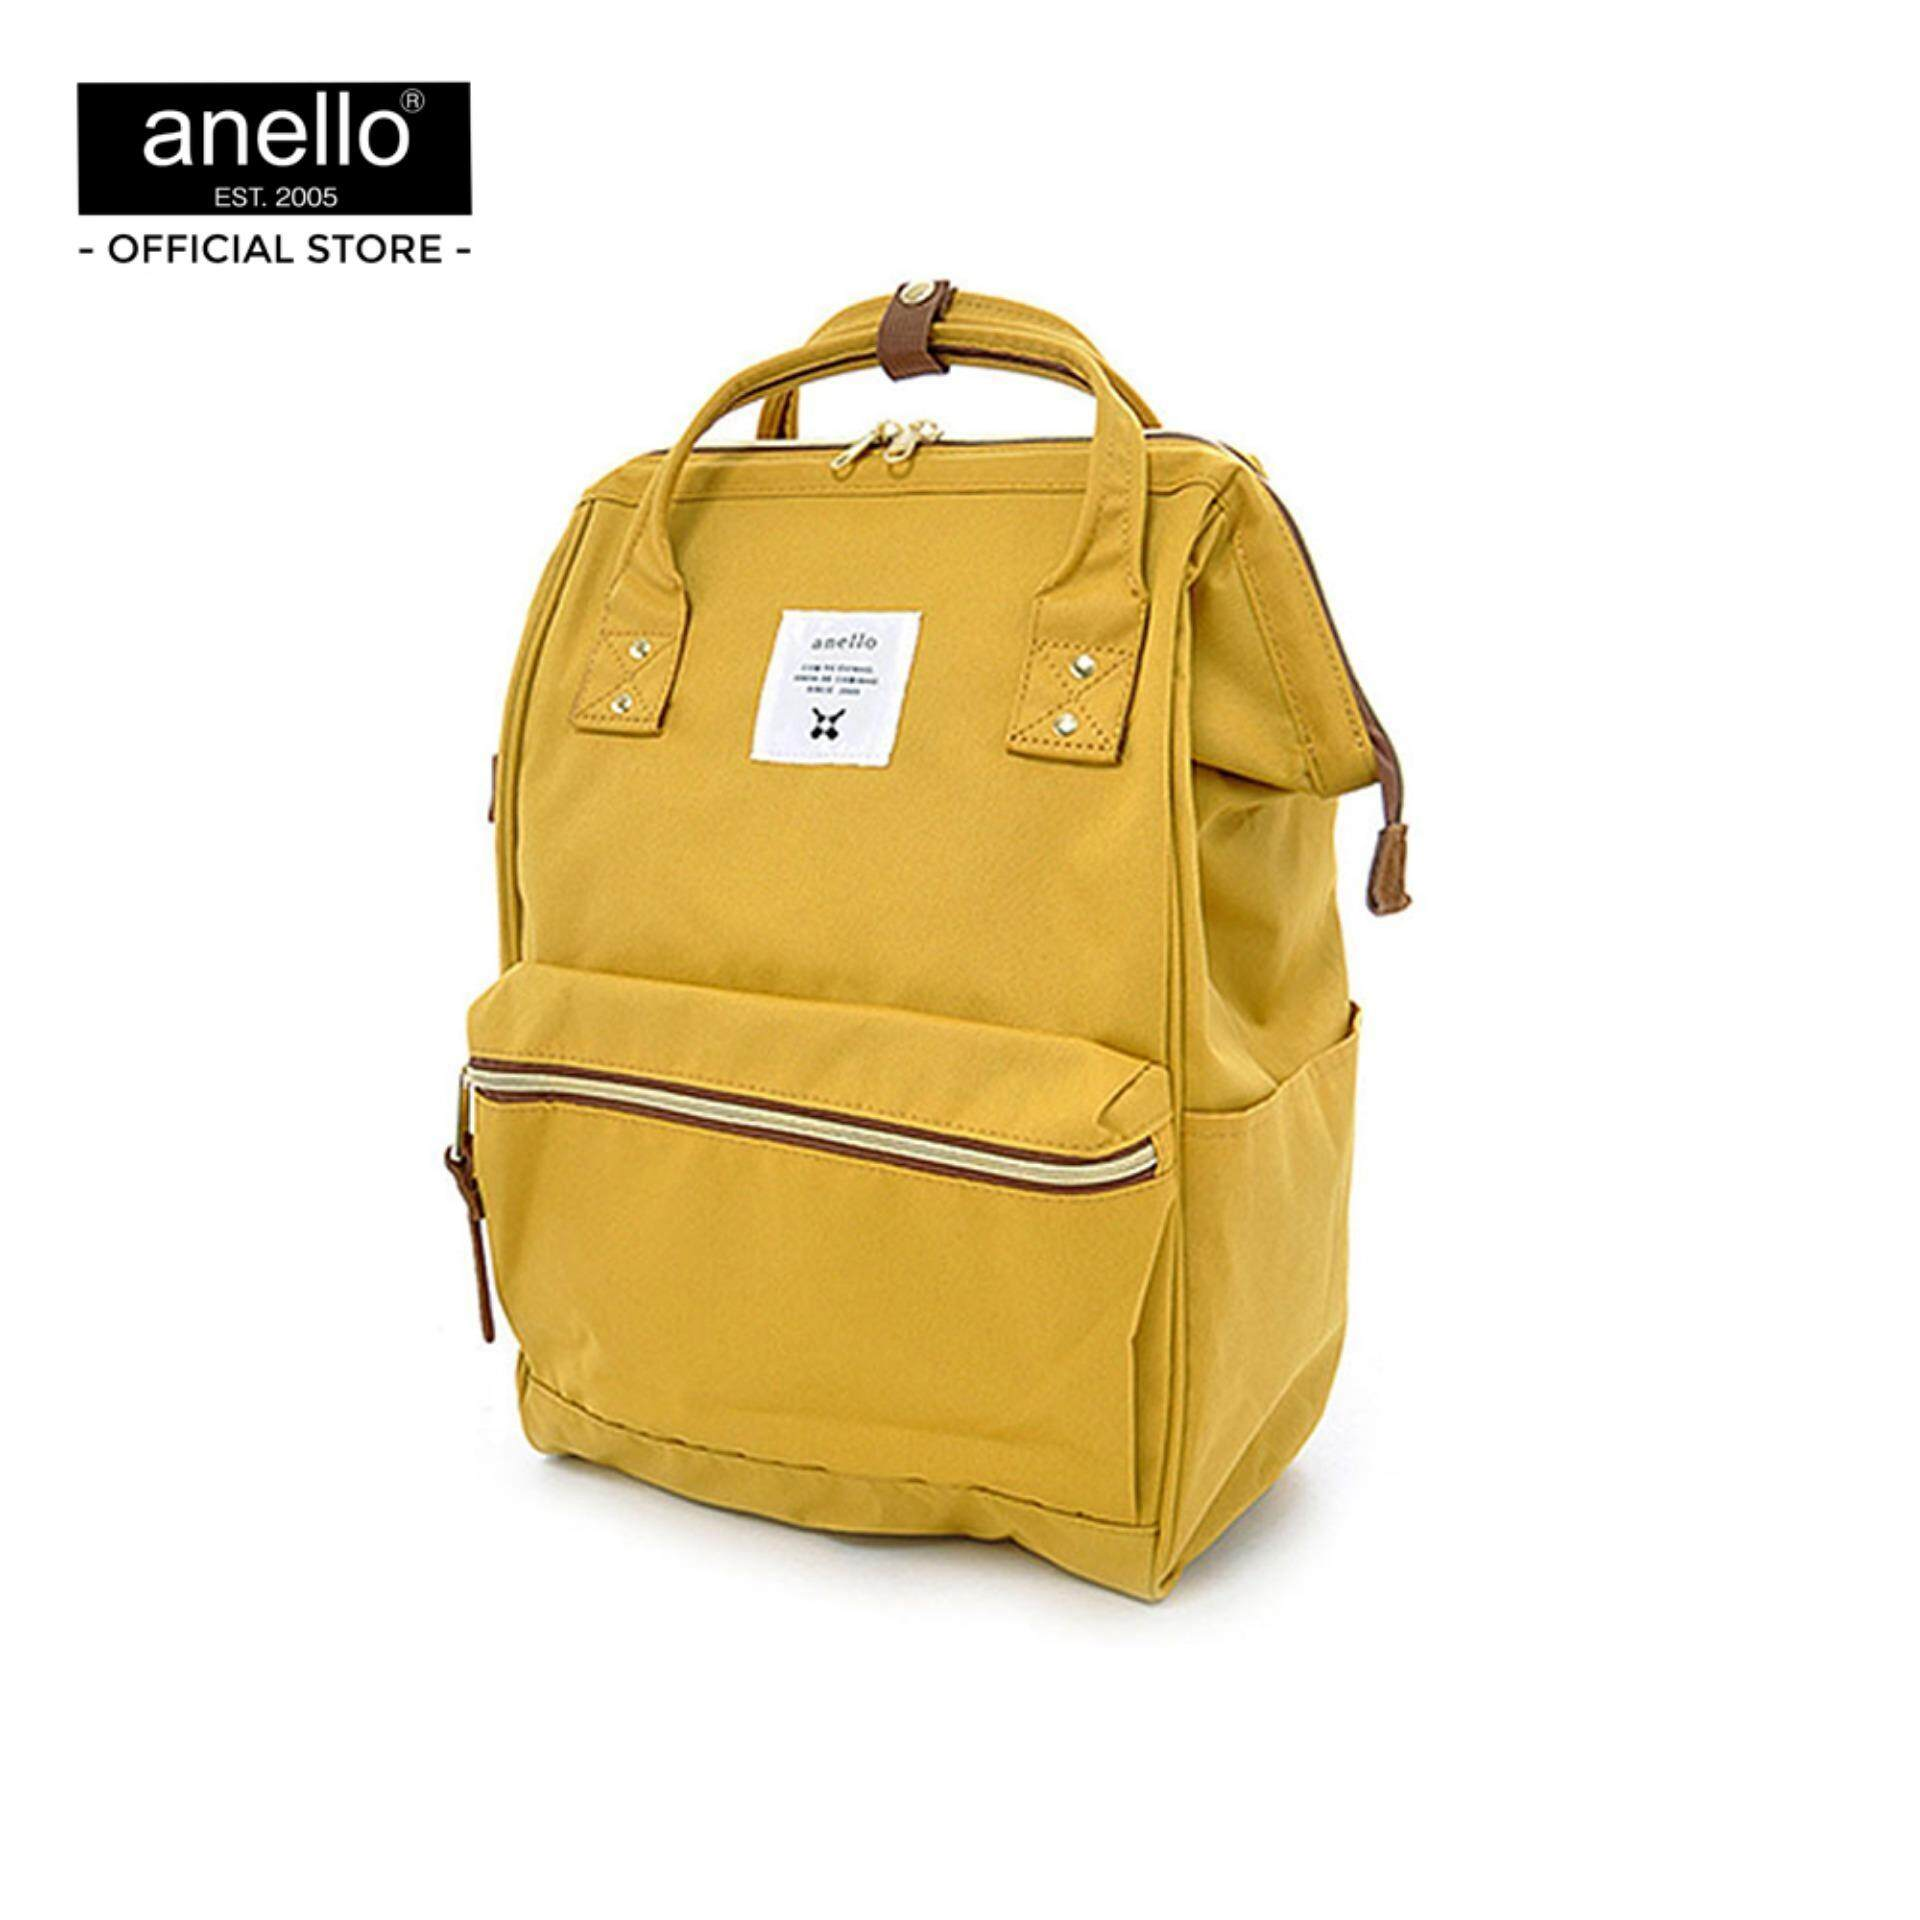 anello กระเป๋า เป้ REG Backpack_AT-B0193A